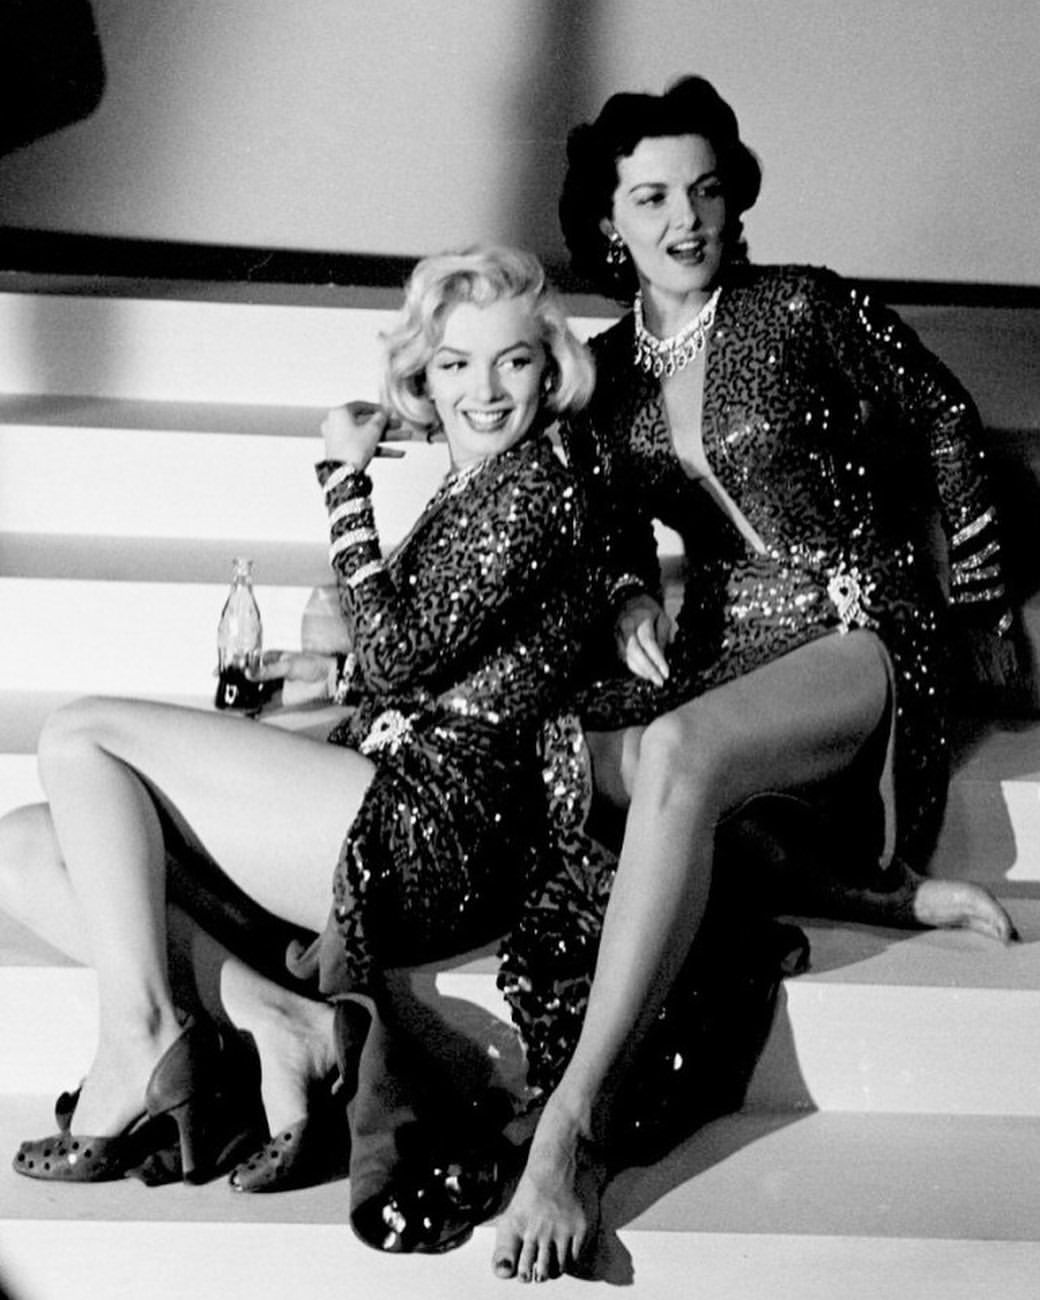 Marilyn Monroe And Jane Russell Taking A Break On The Set Of Gentlemen Prefer Blondes 1953 Mari Gentlemen Prefer Blondes Jane Russell Classic Hollywood